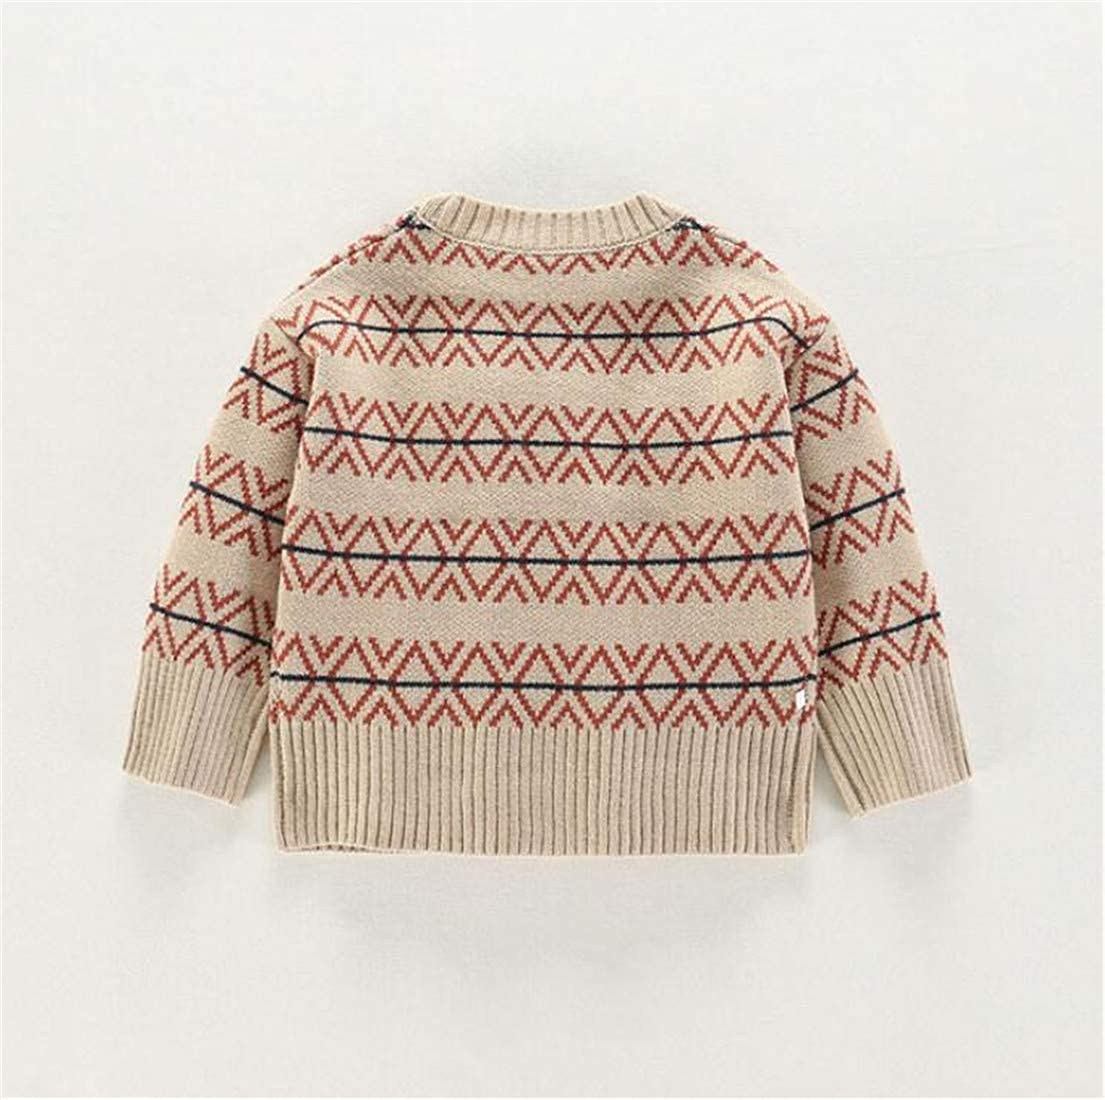 Pandapang Girl Cotton Coat Knitted Casual Slim Fit Sweater Cardigans